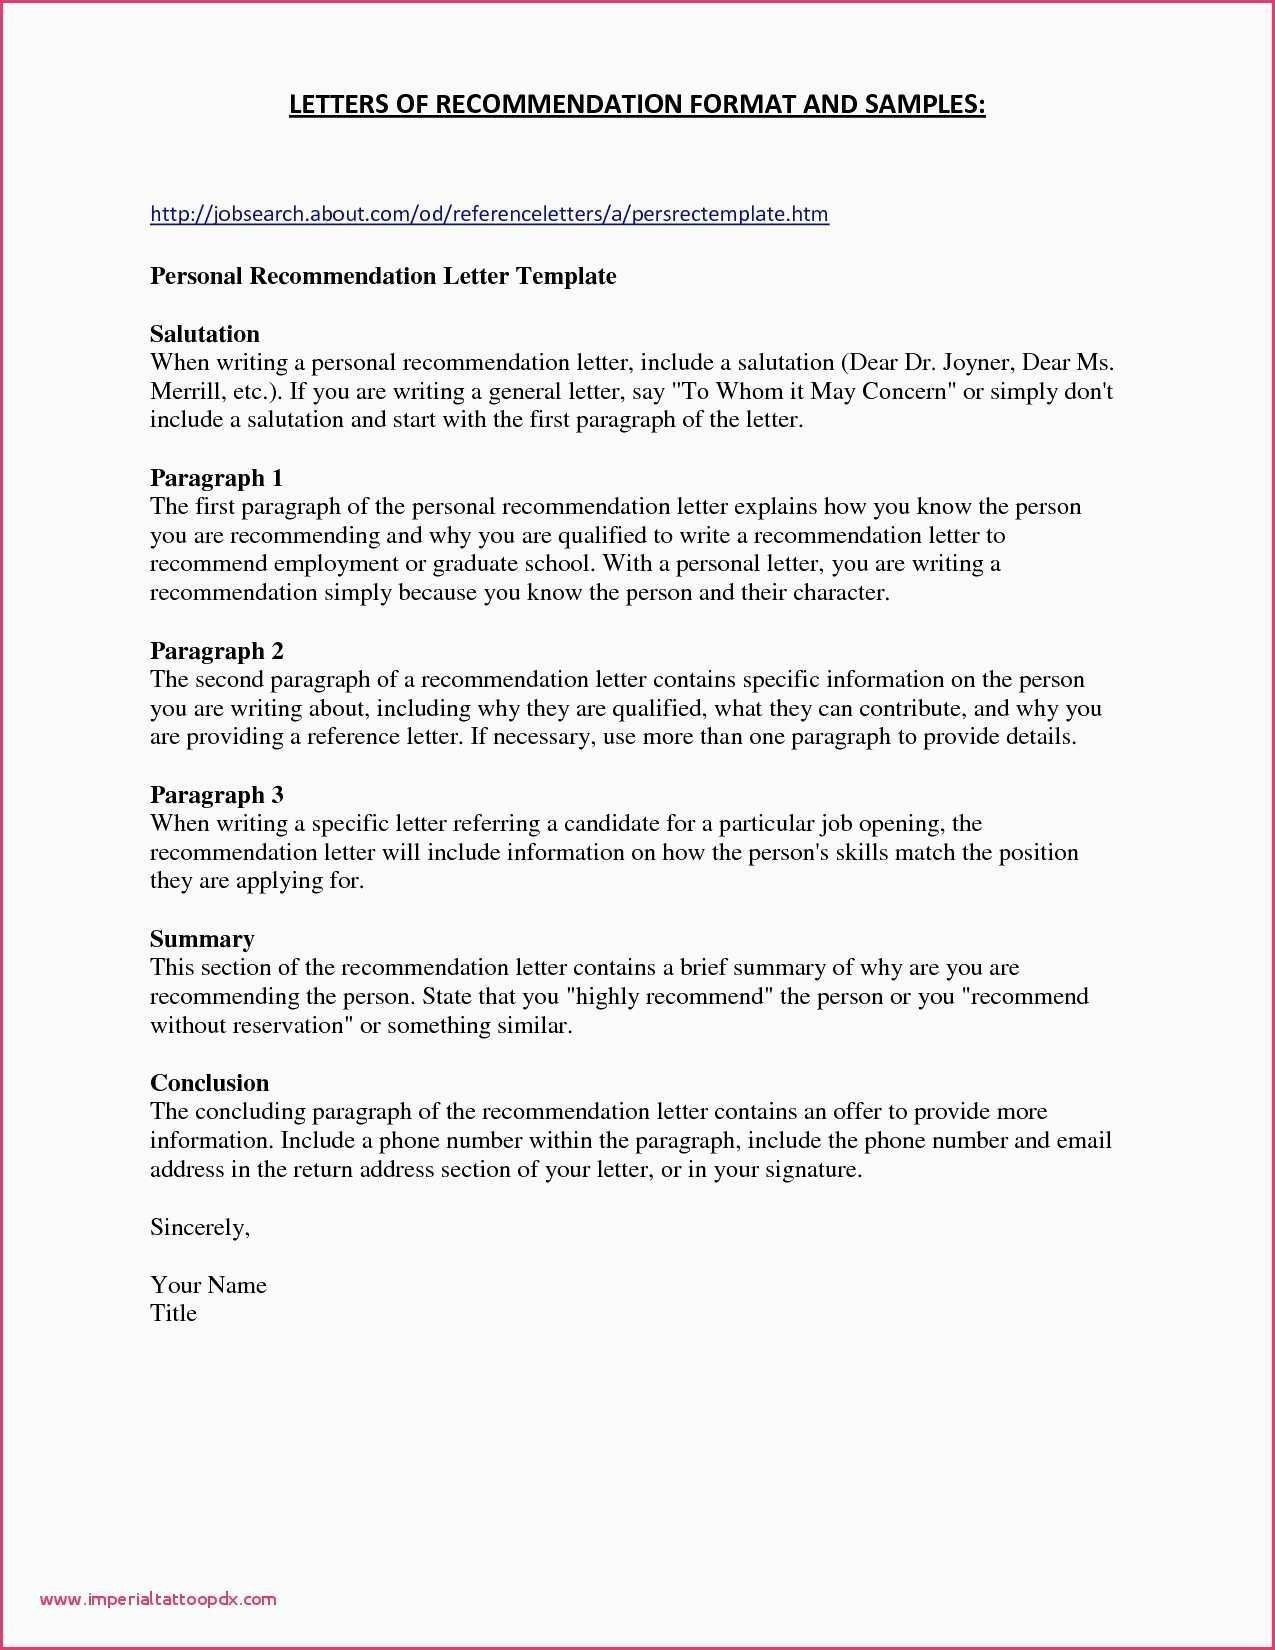 Reference Letter Template Graphic Designer Here S Why You Should Attend Reference Letter Tem Cover Letter For Resume Letter Of Recommendation Letter Templates Formats for letters of recommendation